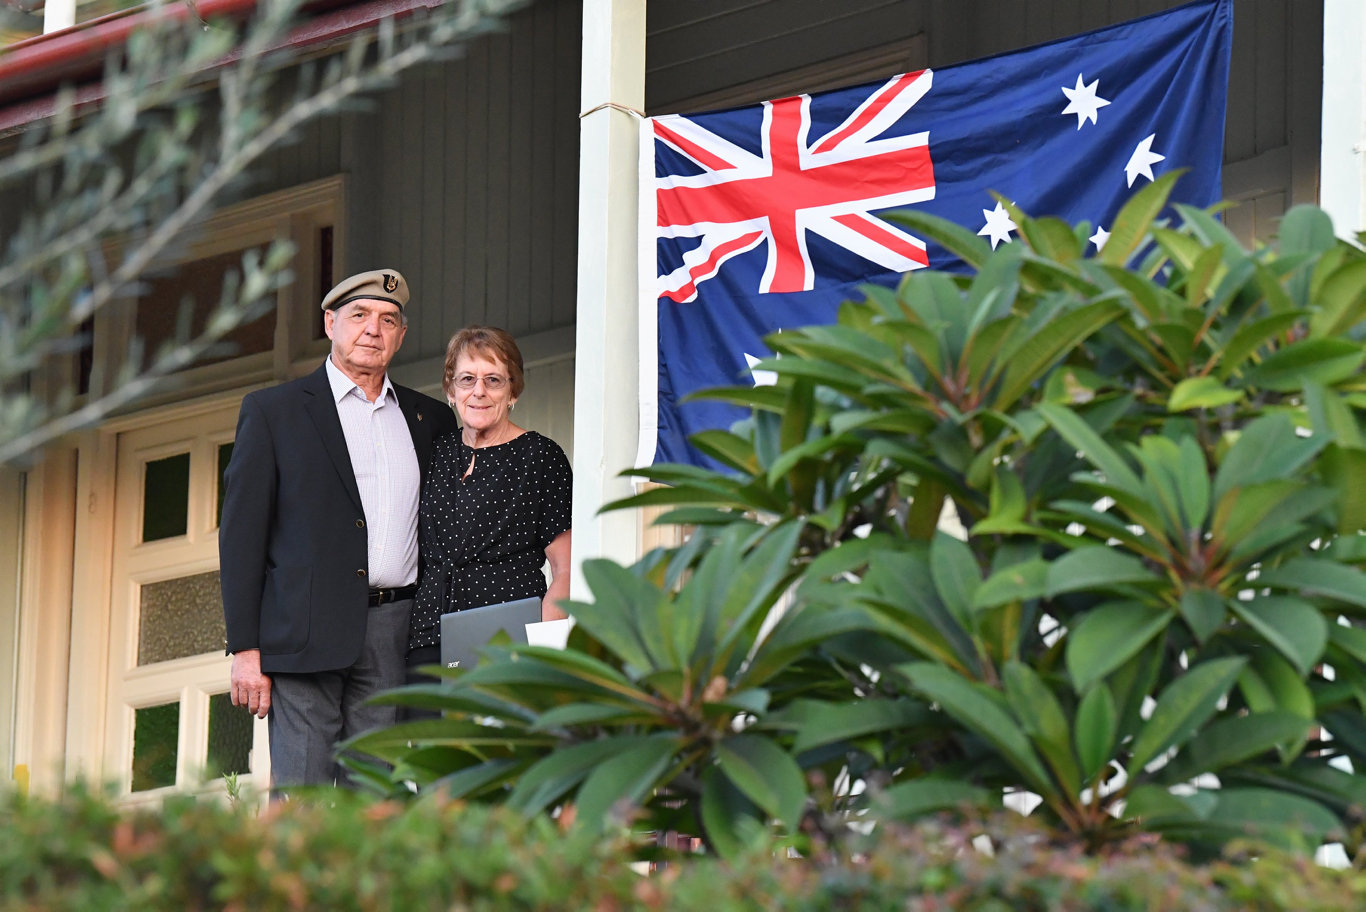 Anzac Day 2020 - Vietnam veteran Ted Ruska and wife Lis on the verandah of their Sussex St house in Maryborough.Photo: Alistair Brightman